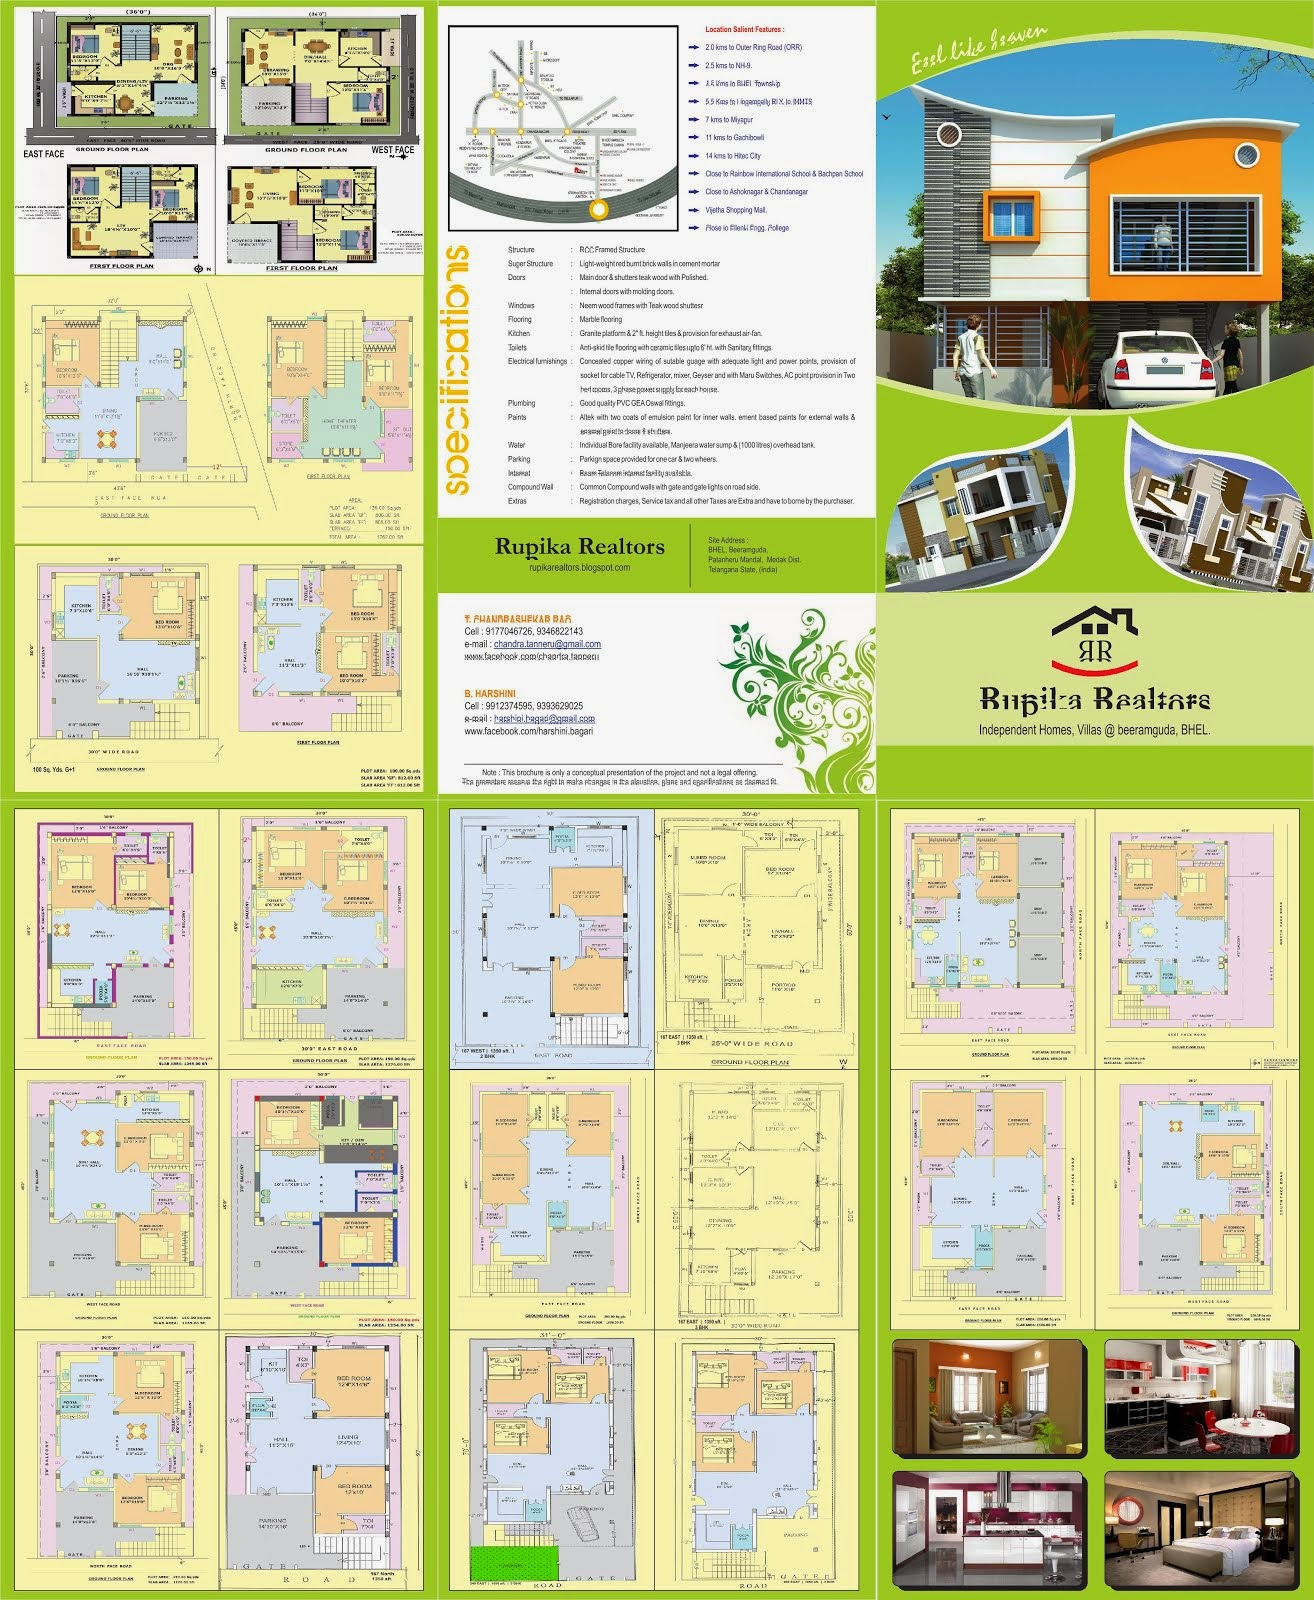 rupika realtors spacious independent houses for in uppal brouchure